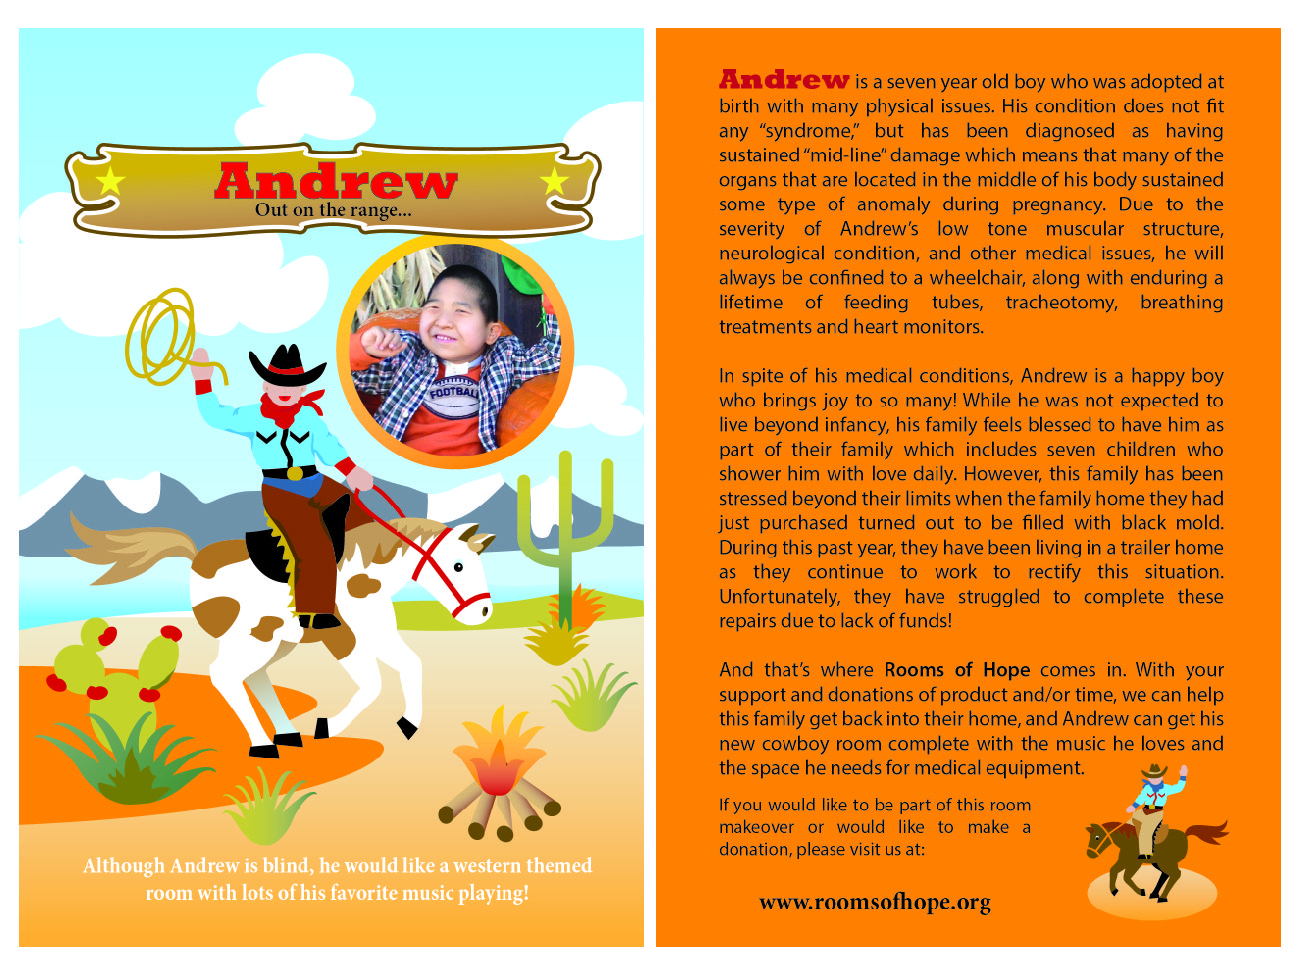 This is Andrew's postcard introducing him to the Rooms of Hope community.